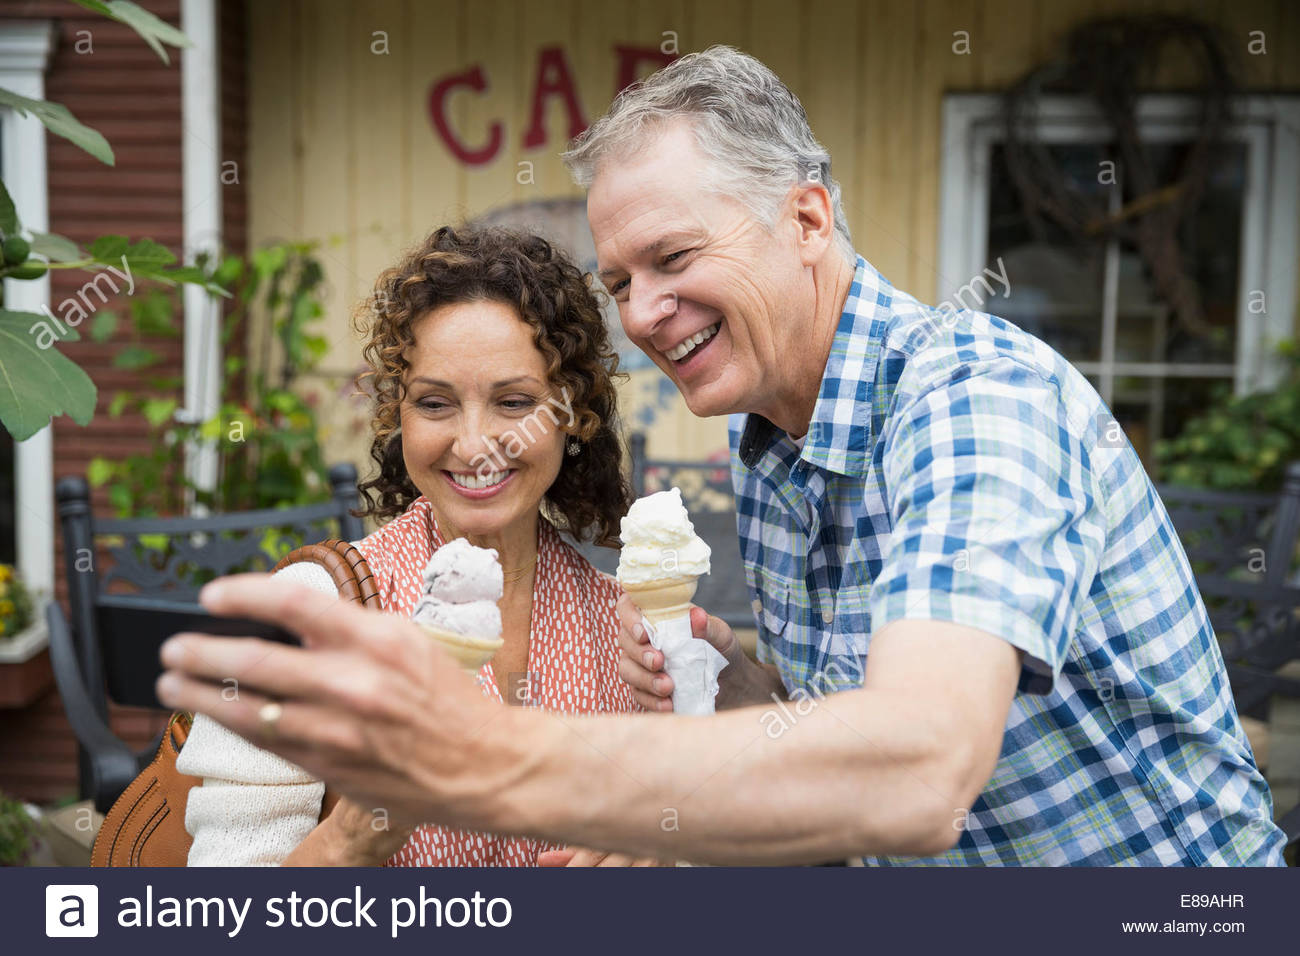 Couple with ice cream taking selfie outside cafe Stock Photo